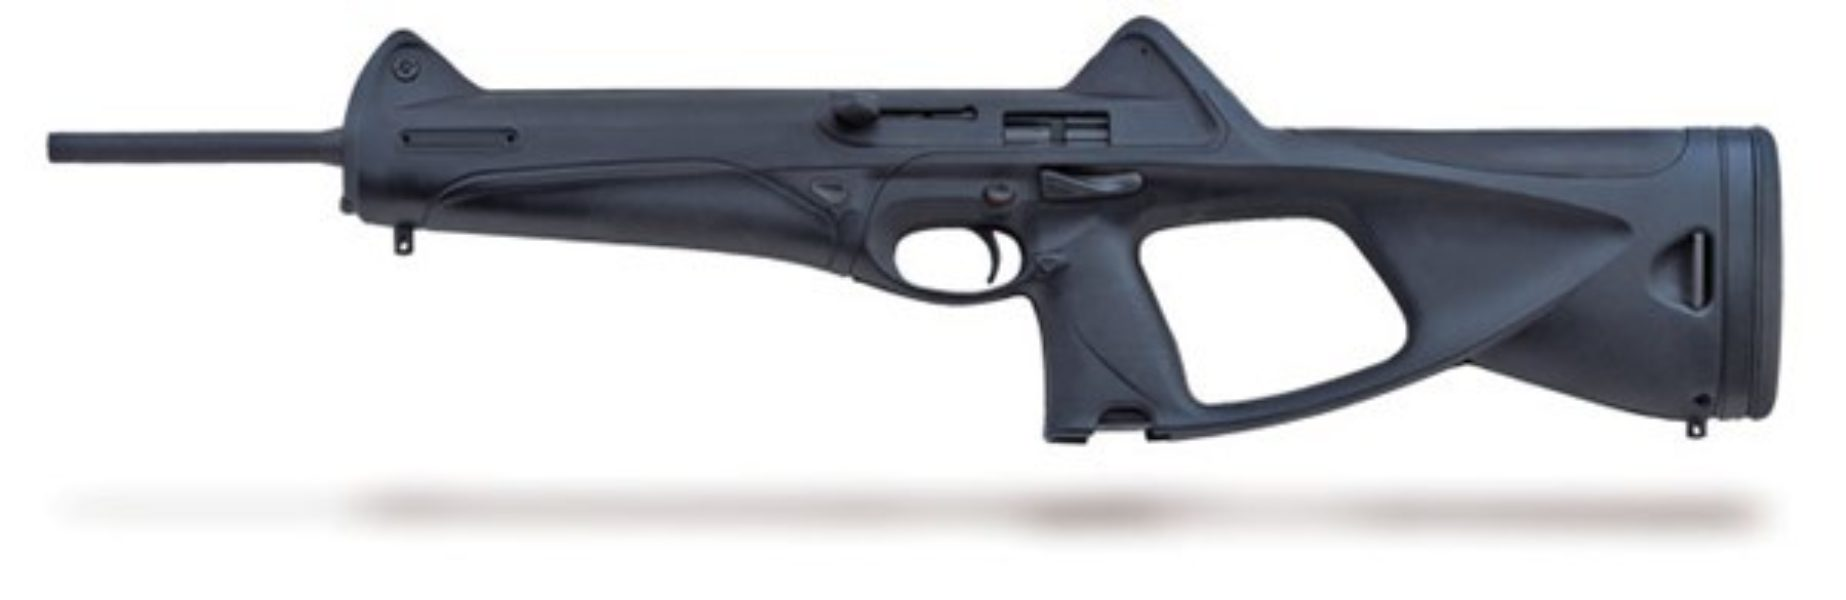 Beretta cx4 storm kal 9mm